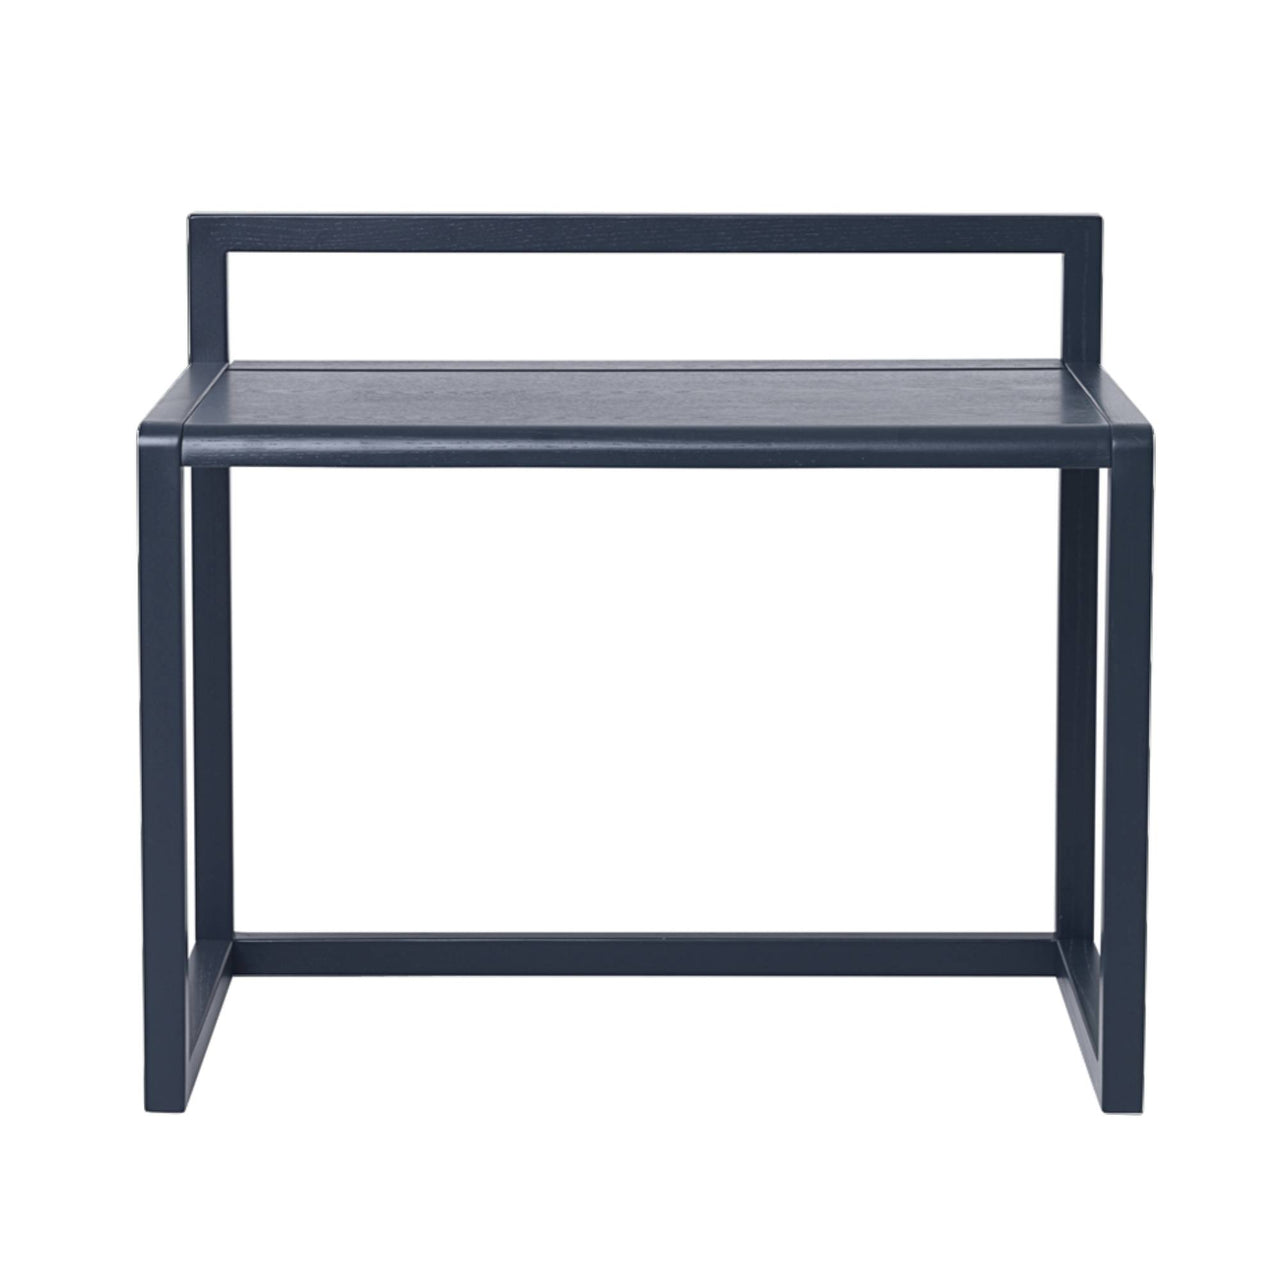 Little Architect Desk: Dark Blue